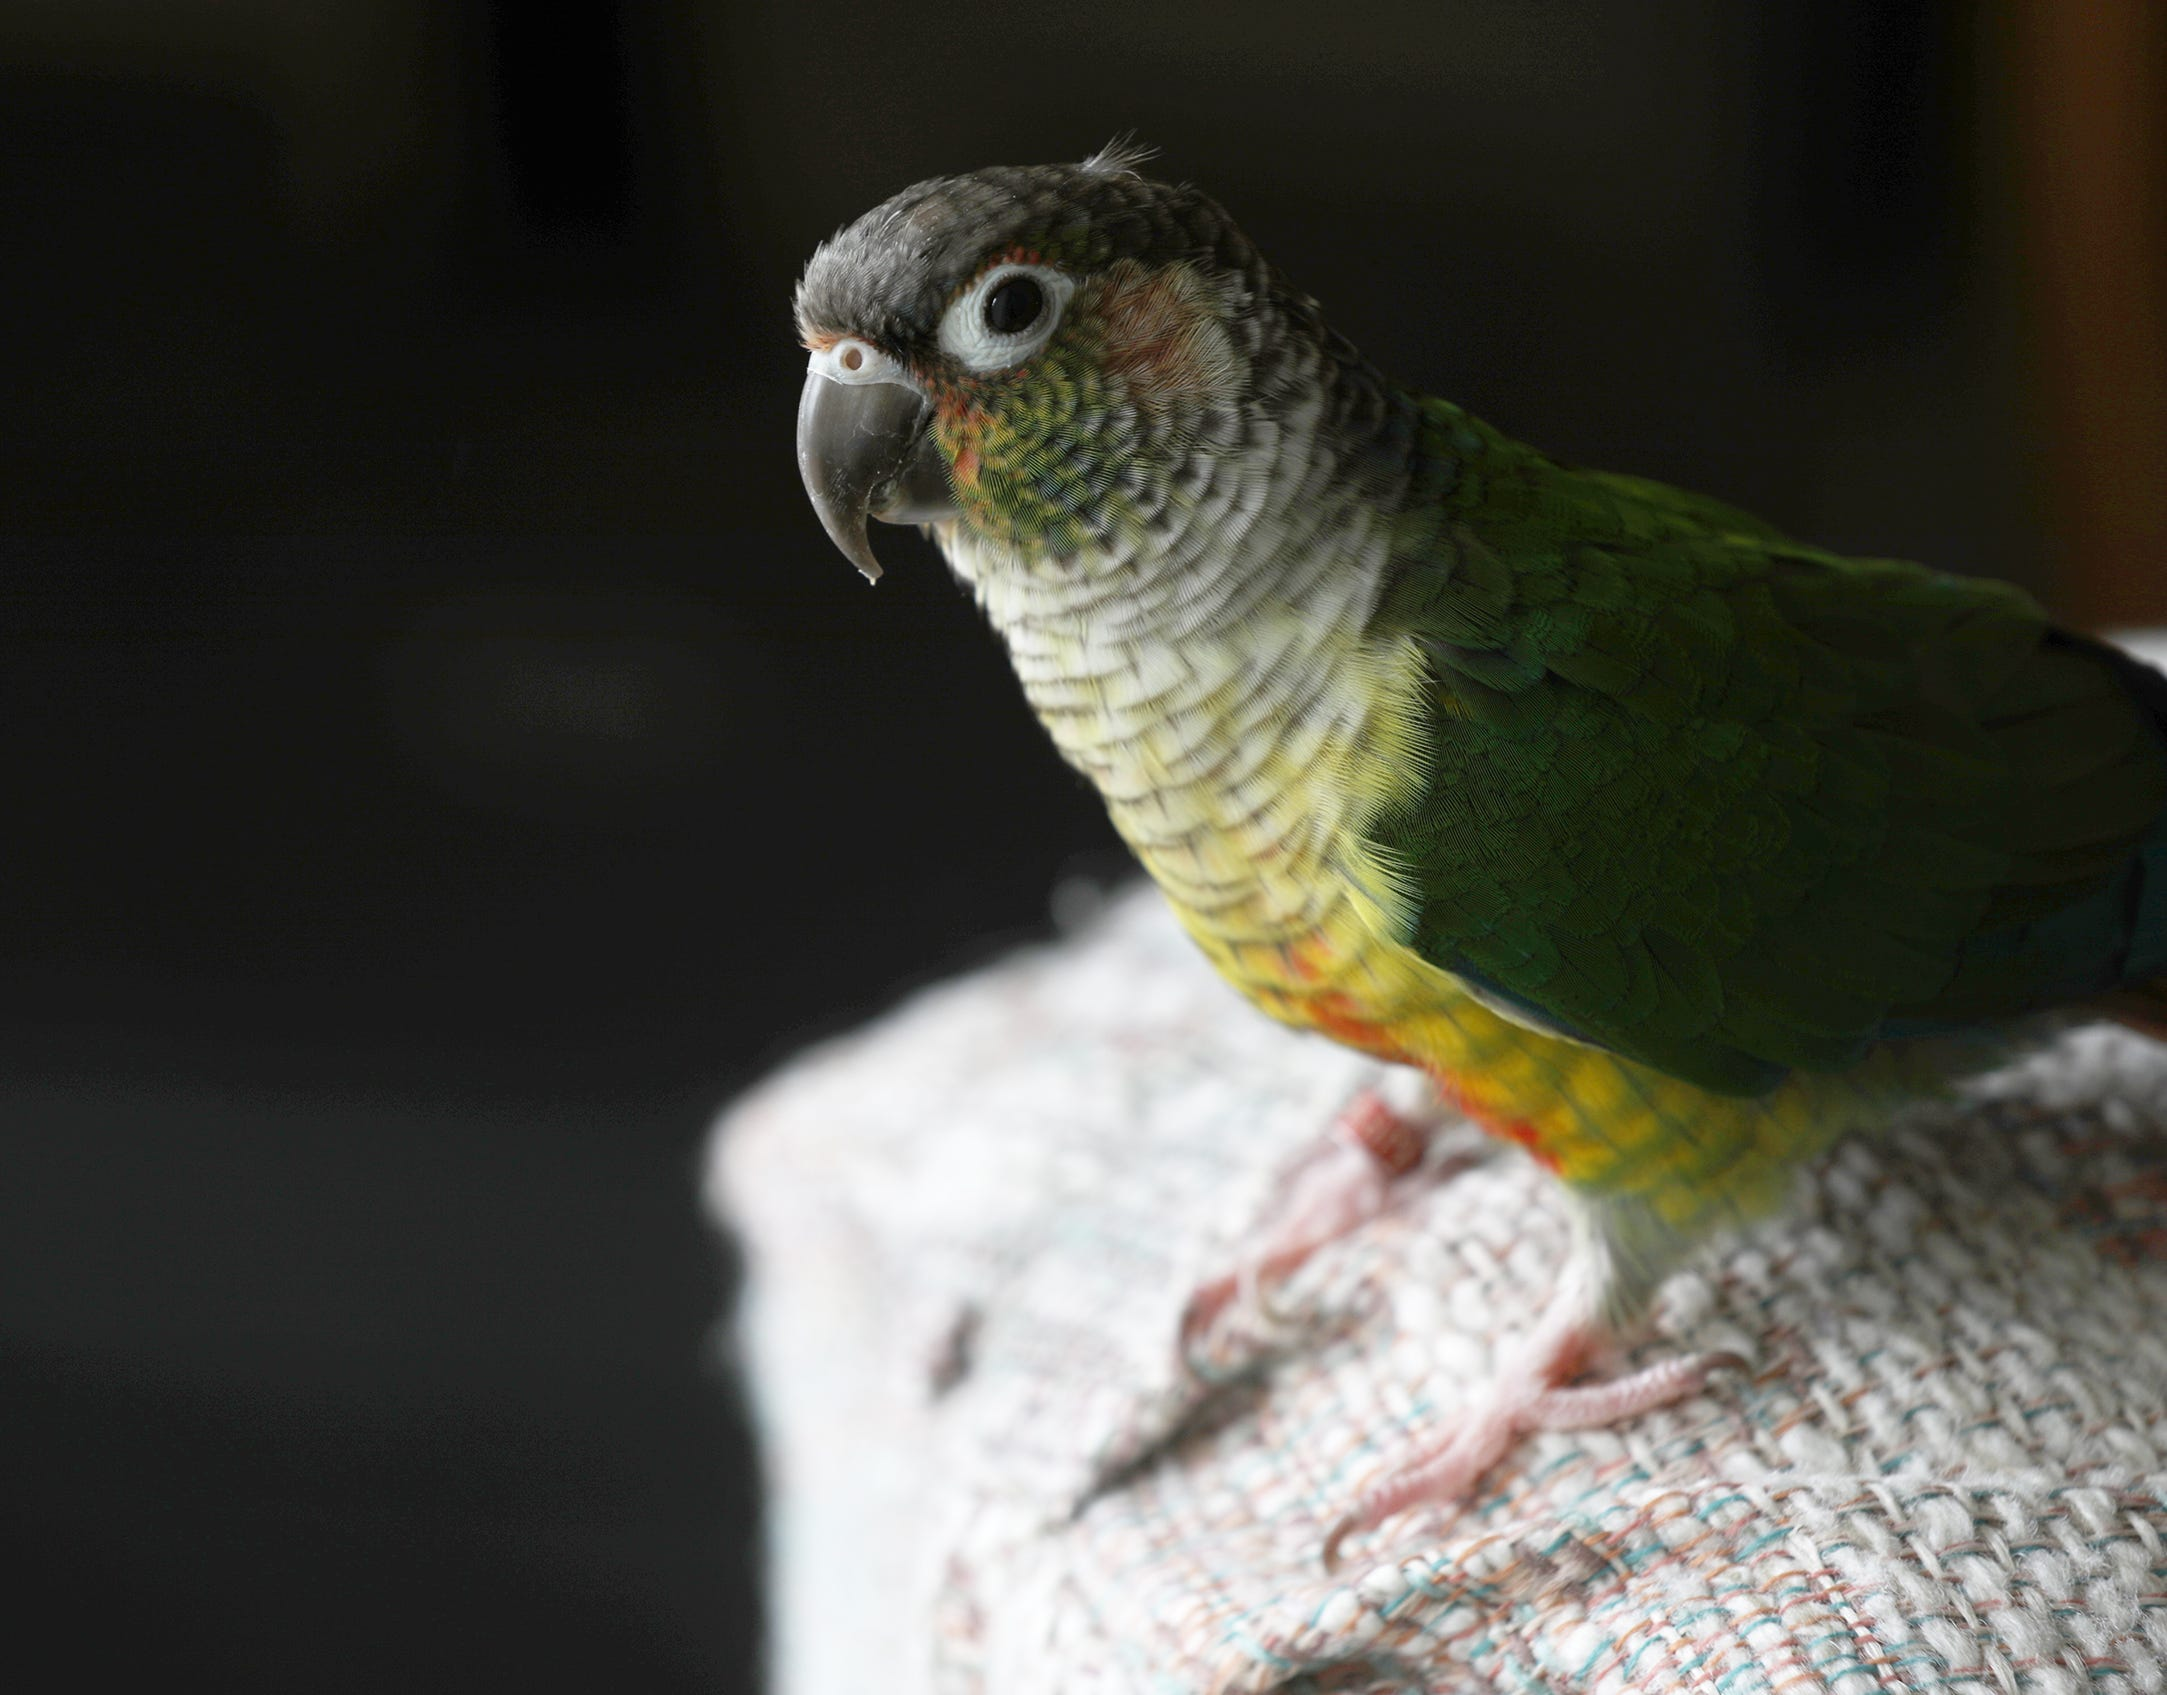 Missing for a year, Missy, the parrot survived A WNY winter and came home